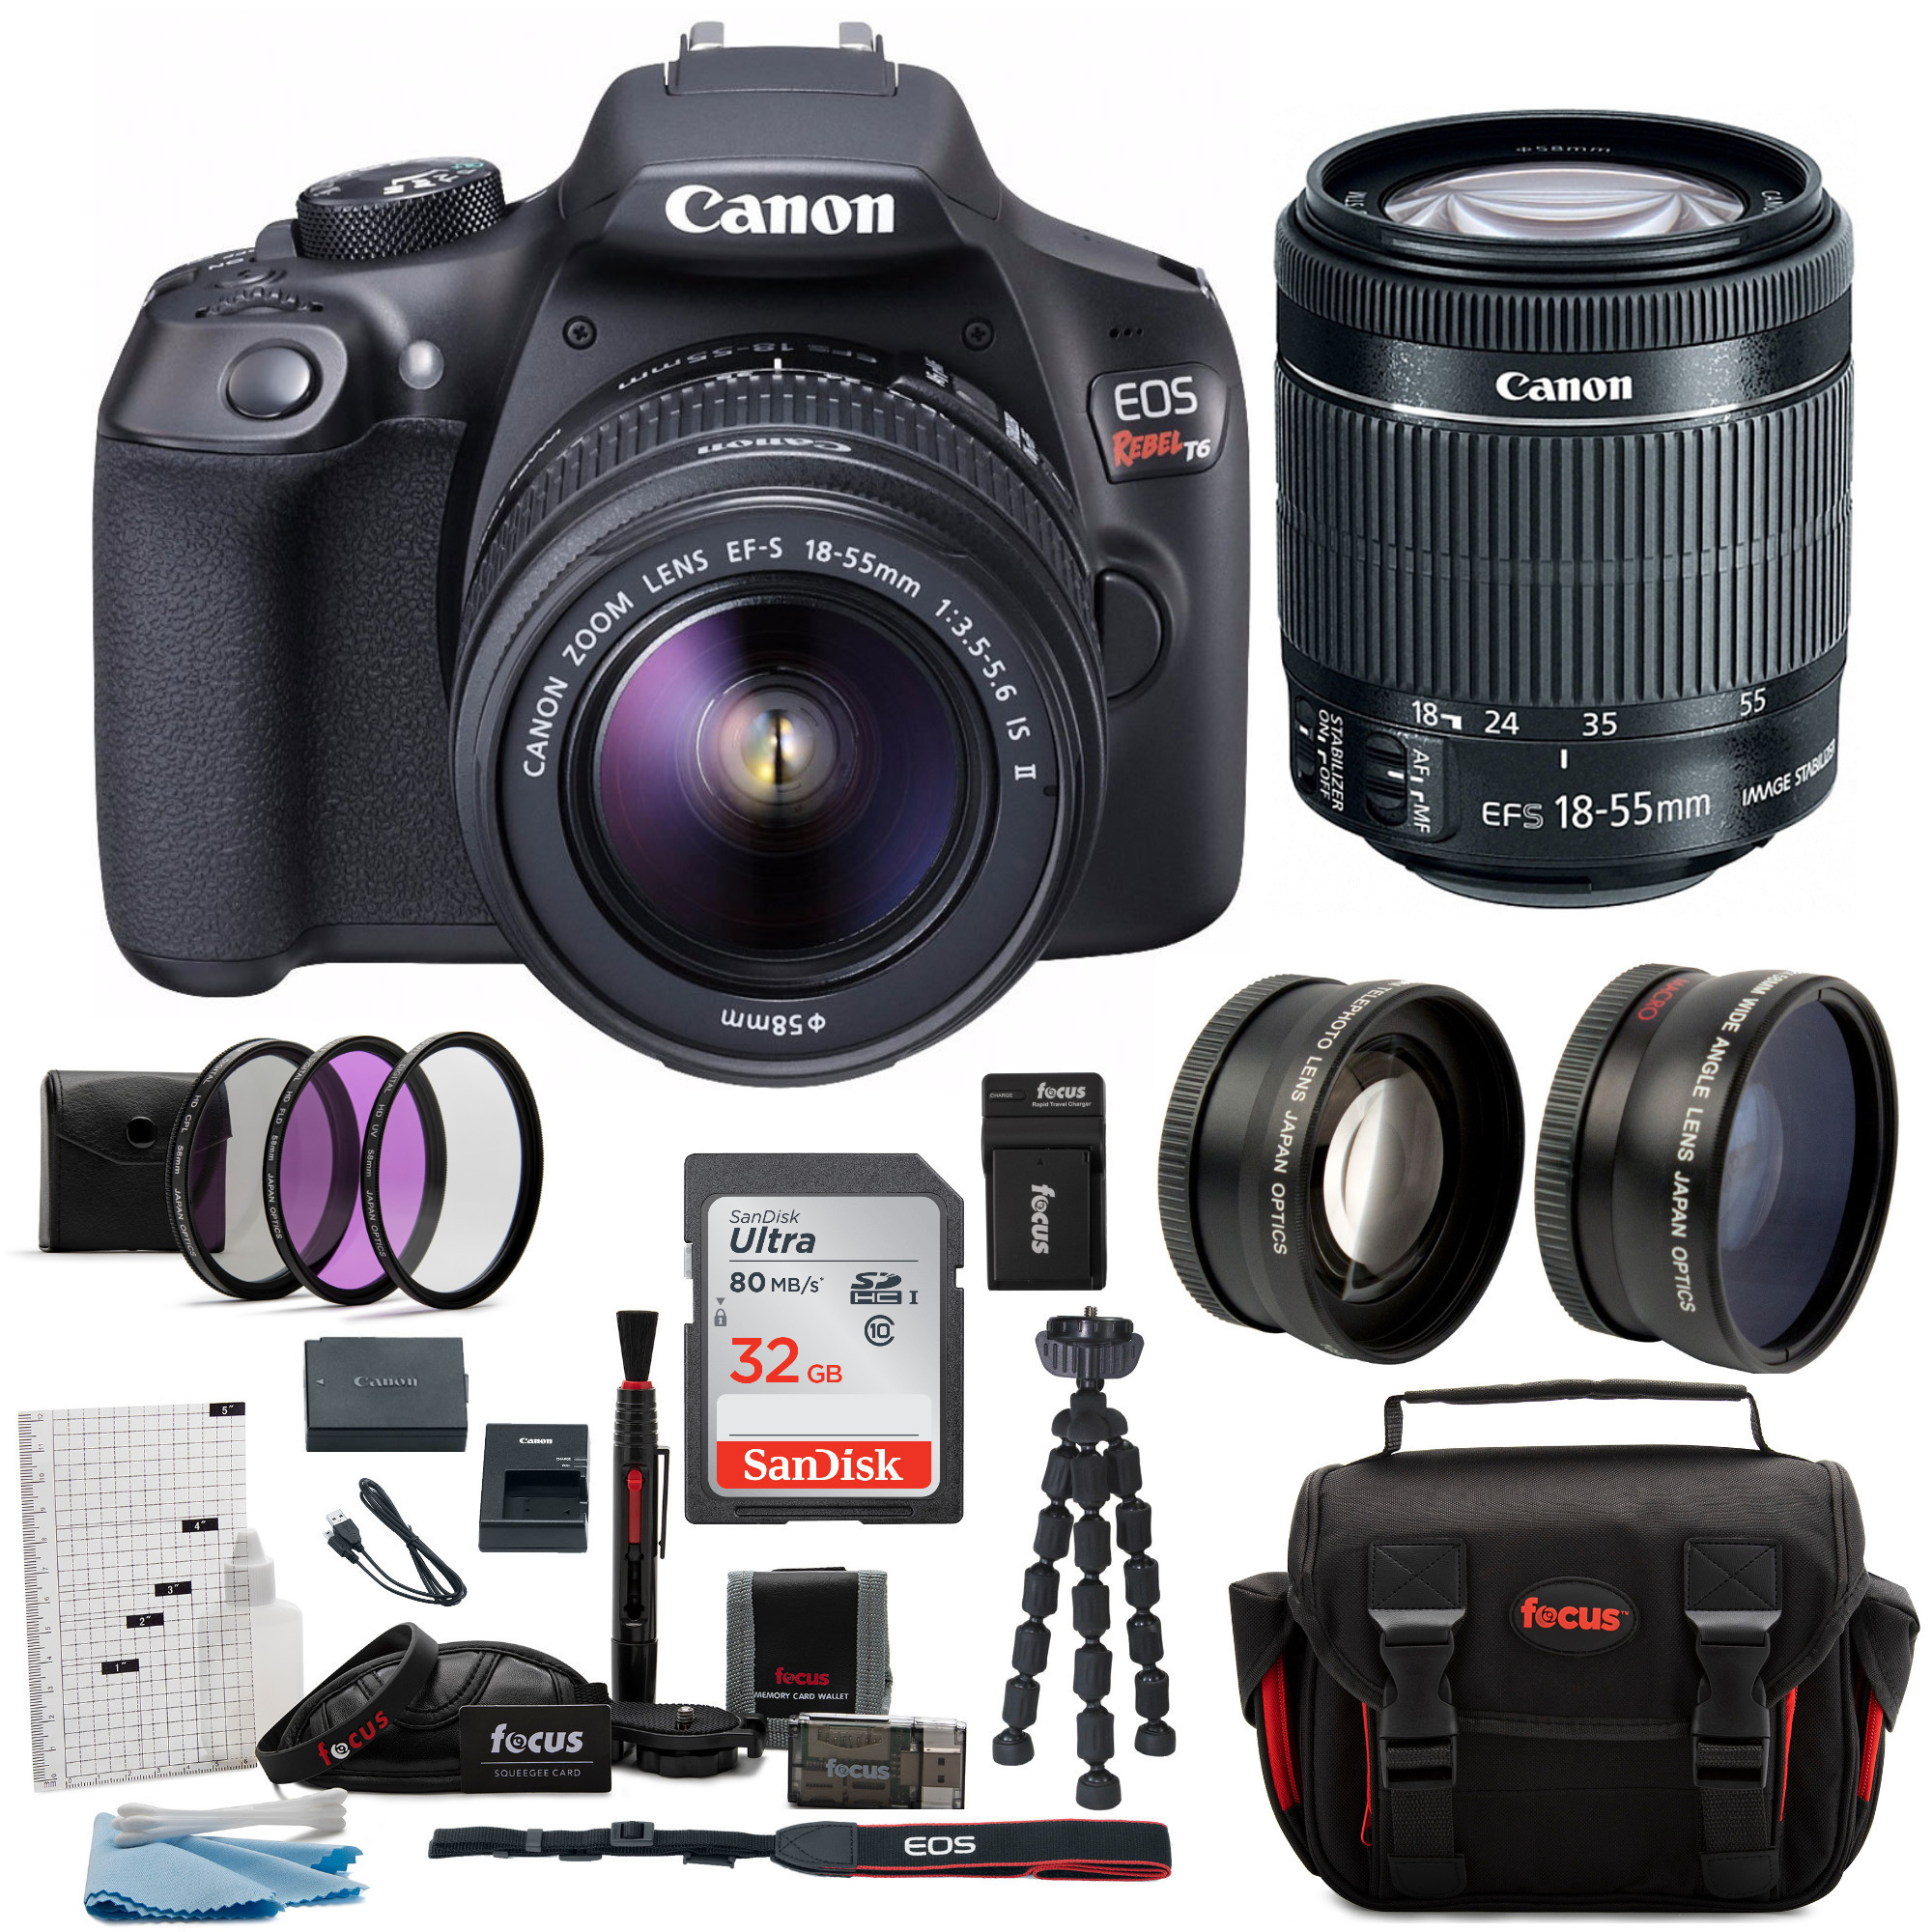 canon t6 eos rebel dslr camera with ef-s 18-55mm is ii lens...